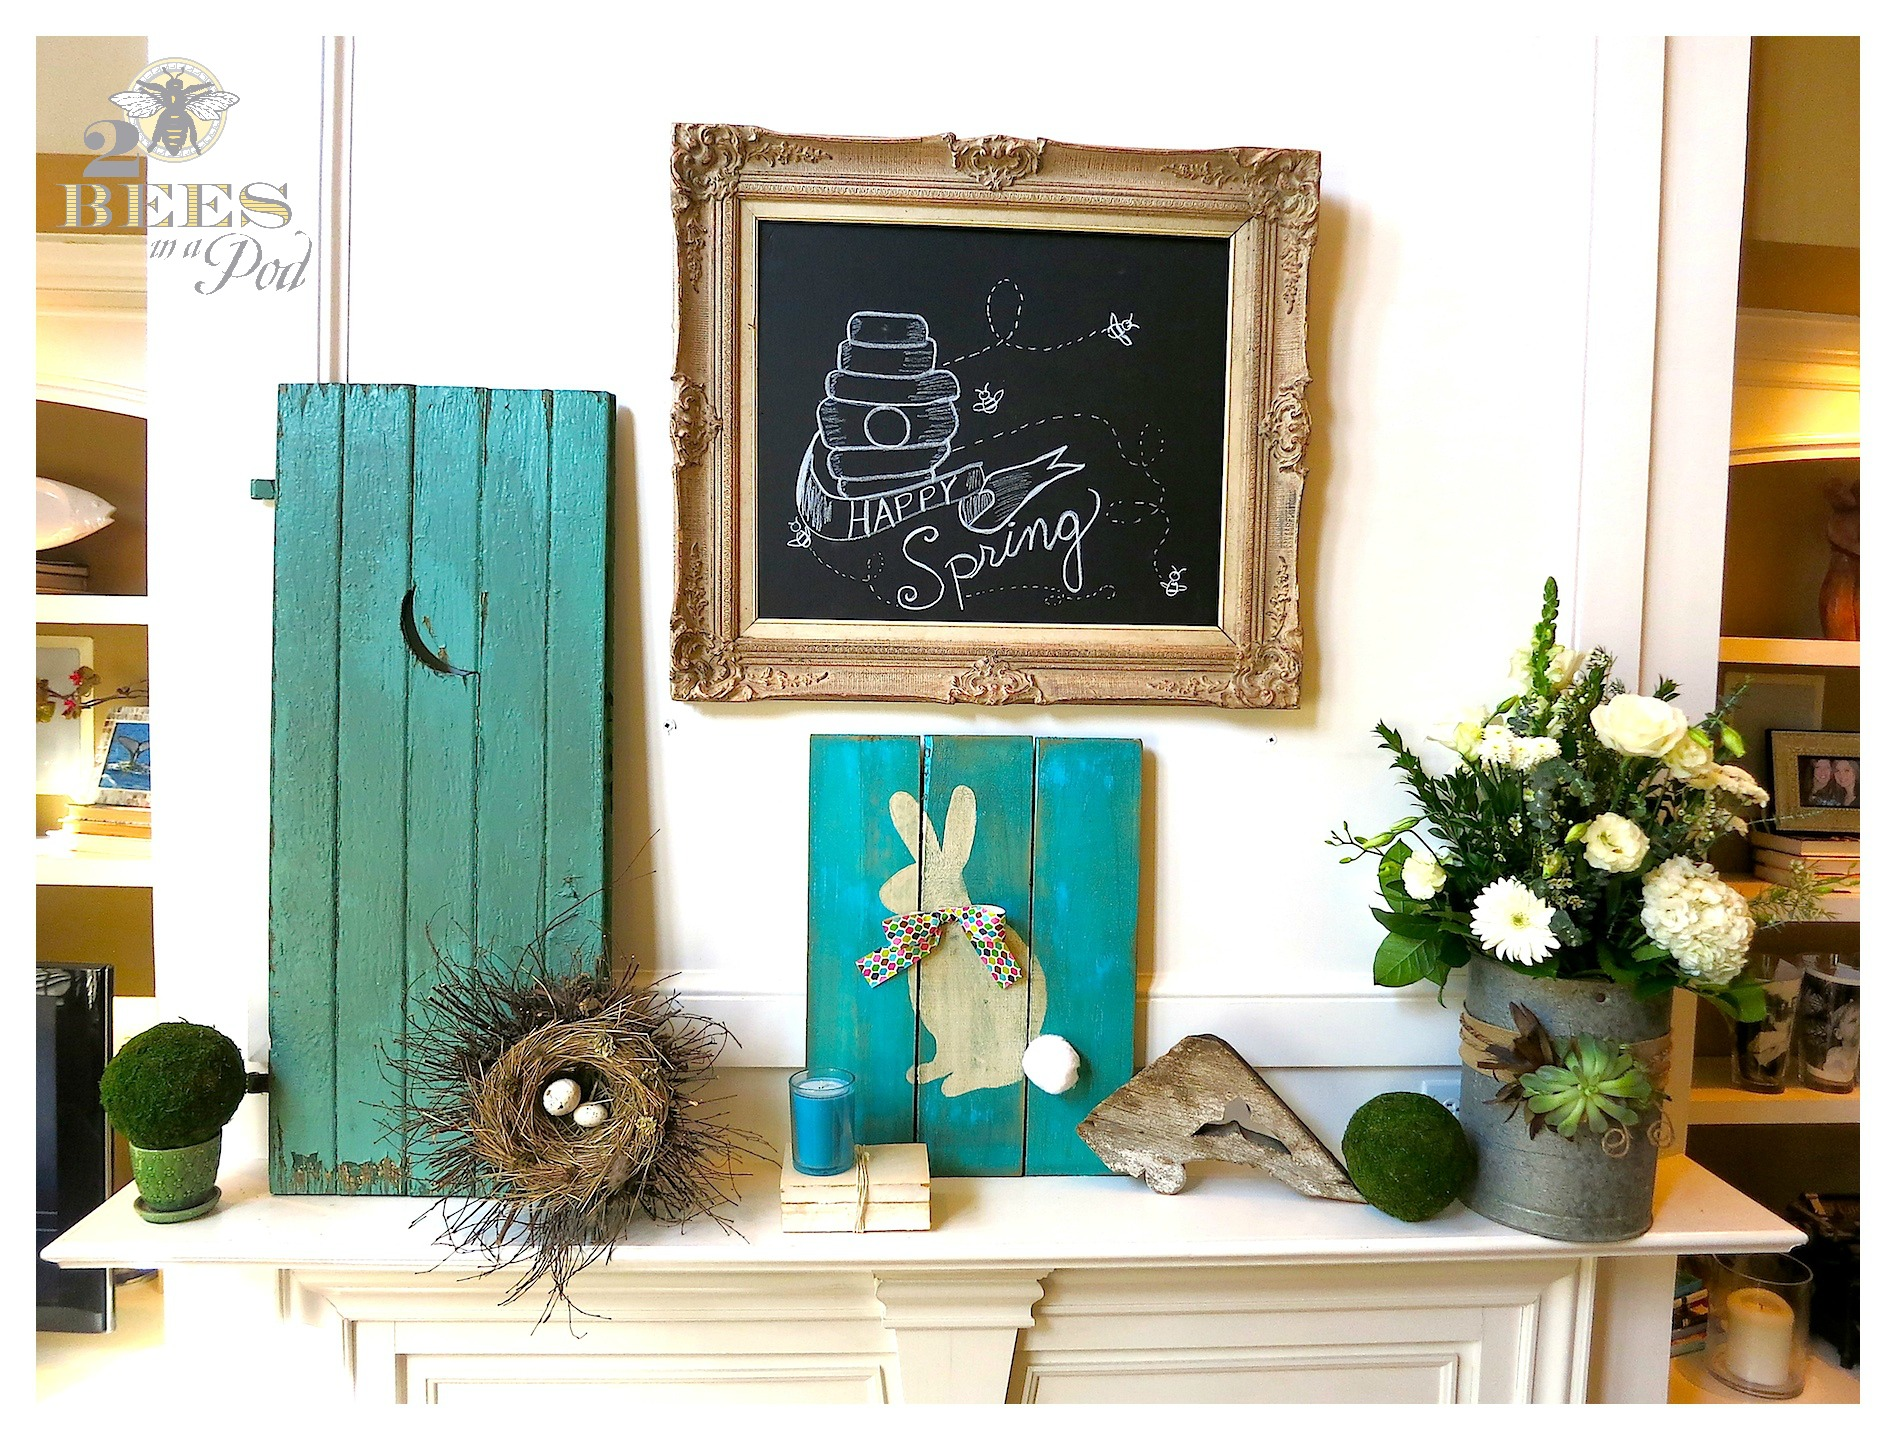 Spring Mantle Update - bright turquoise and vintage, weathered decor. Fresh white flowers, bunny, moss, bird nest